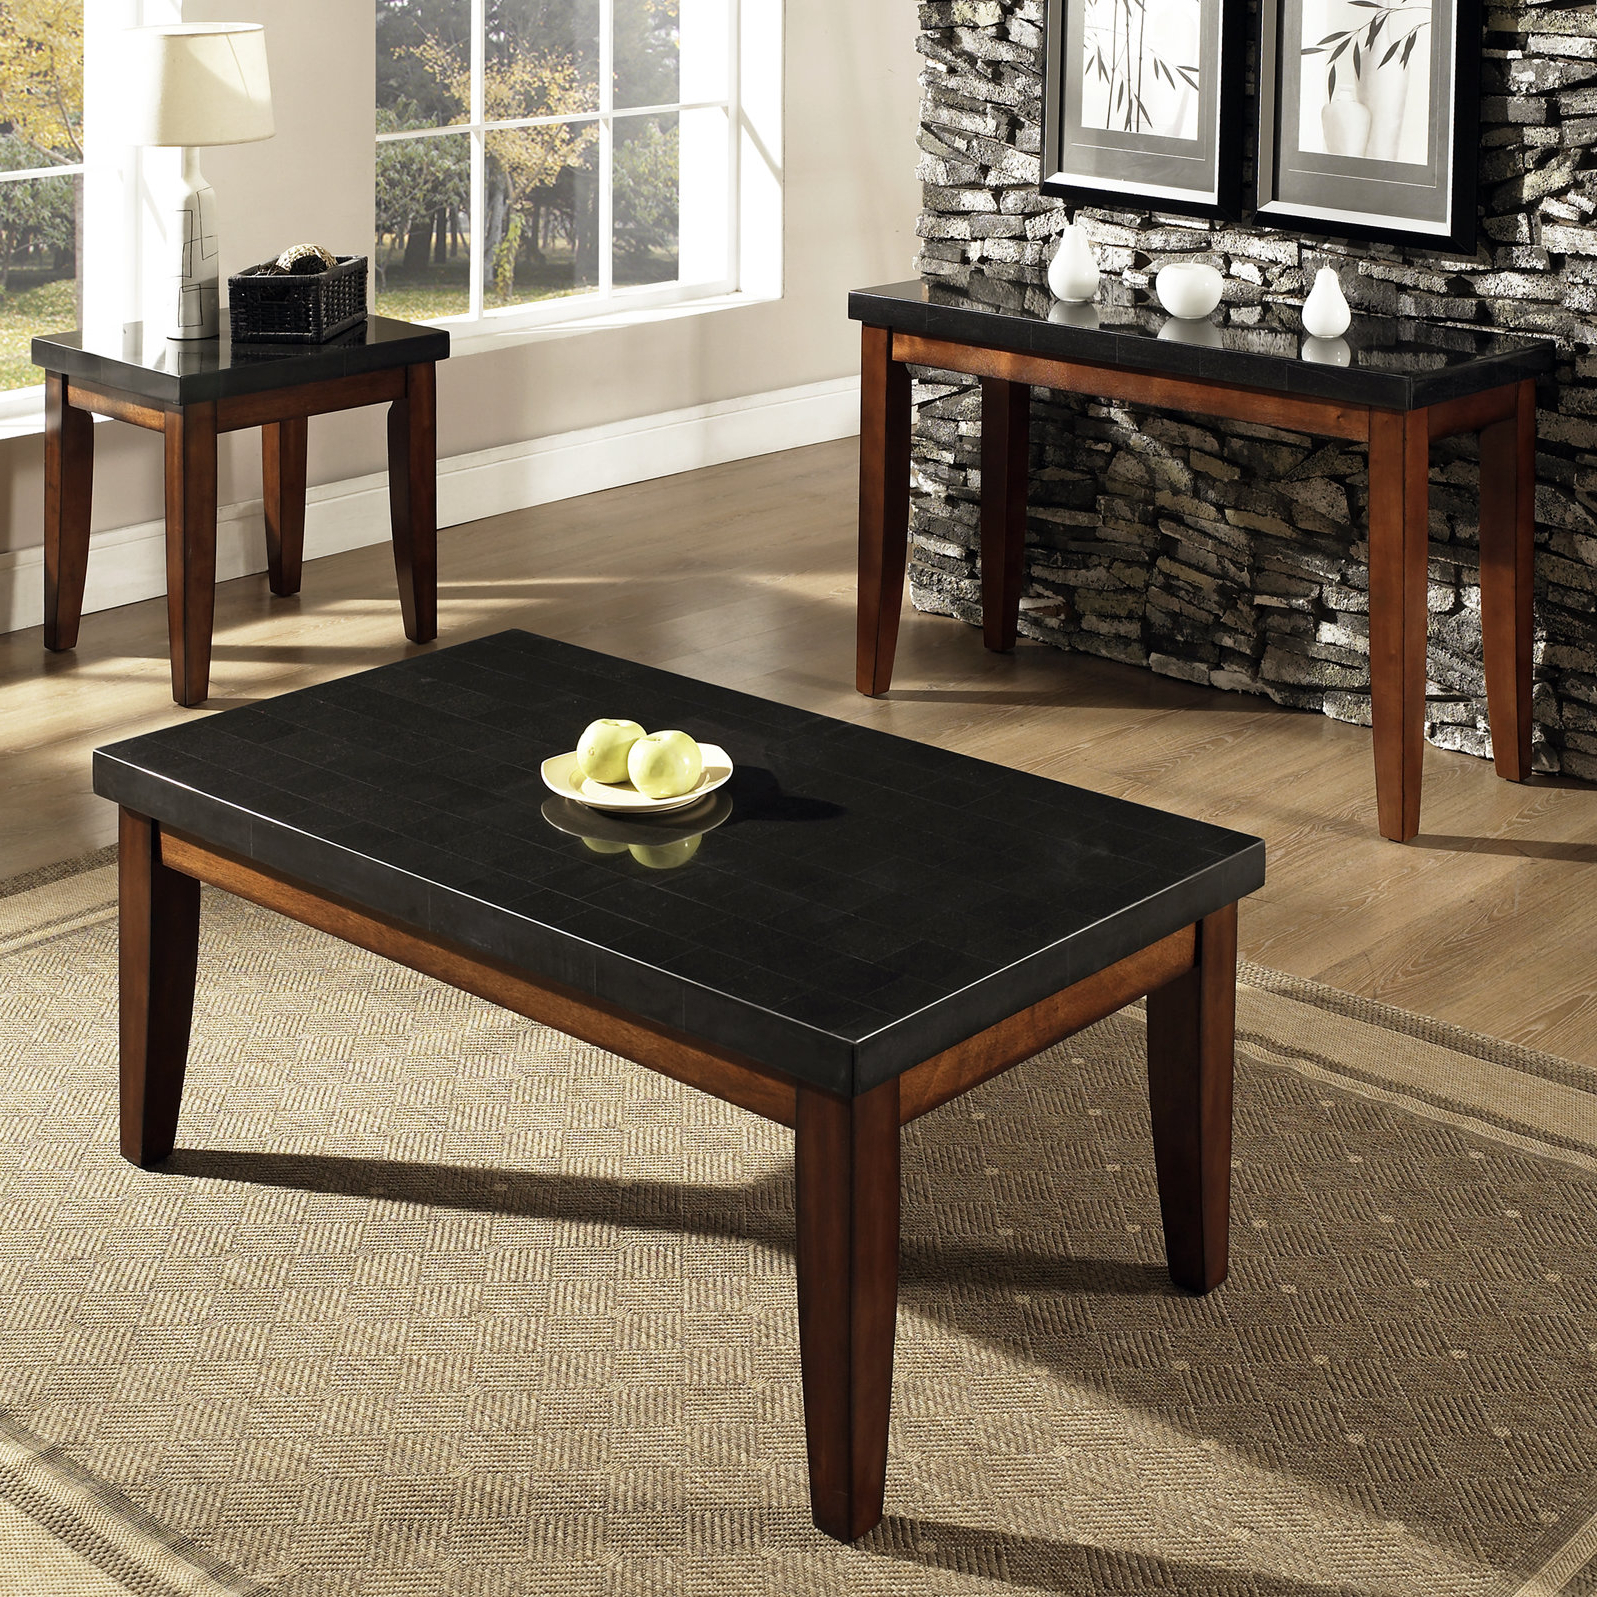 Tilman 3 Piece Coffee Table Set Regarding 2018 Tillman Rectangle Lift Top Cocktail Tables (Gallery 20 of 20)